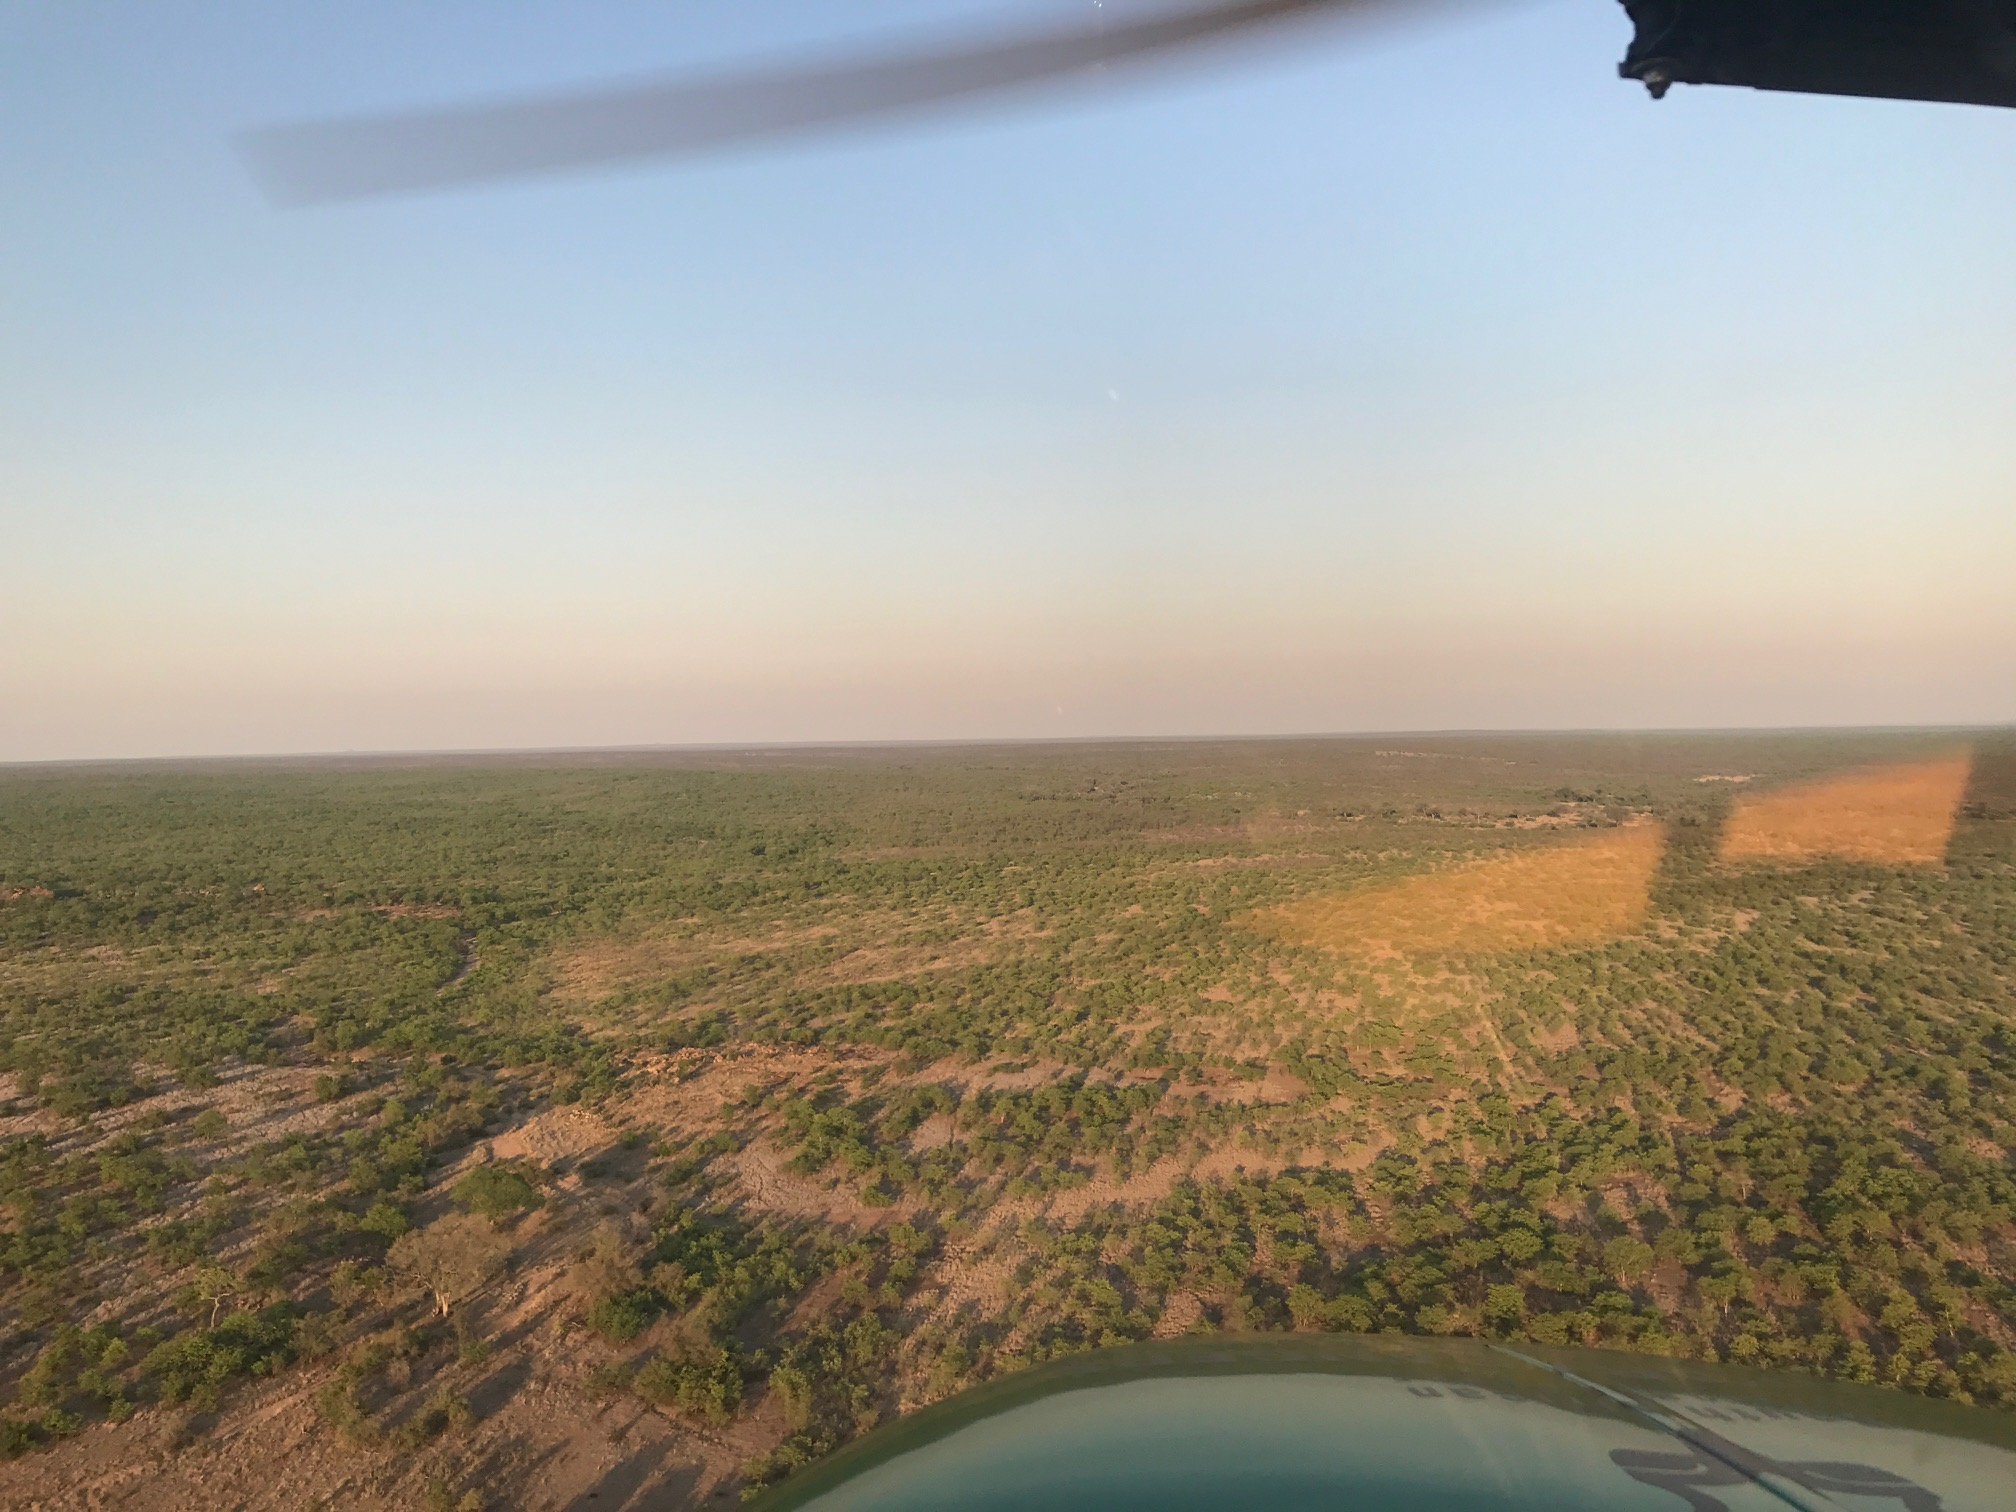 Kruger National Park ranger Andrew Desmet was mistaken for a poacher and shot in an anti-poaching operation. He fought back against severe injuries that meant he can no longer walk long distances or run. Acquiring his pilot's licence, he now contributes to the fight against poaching from the air.